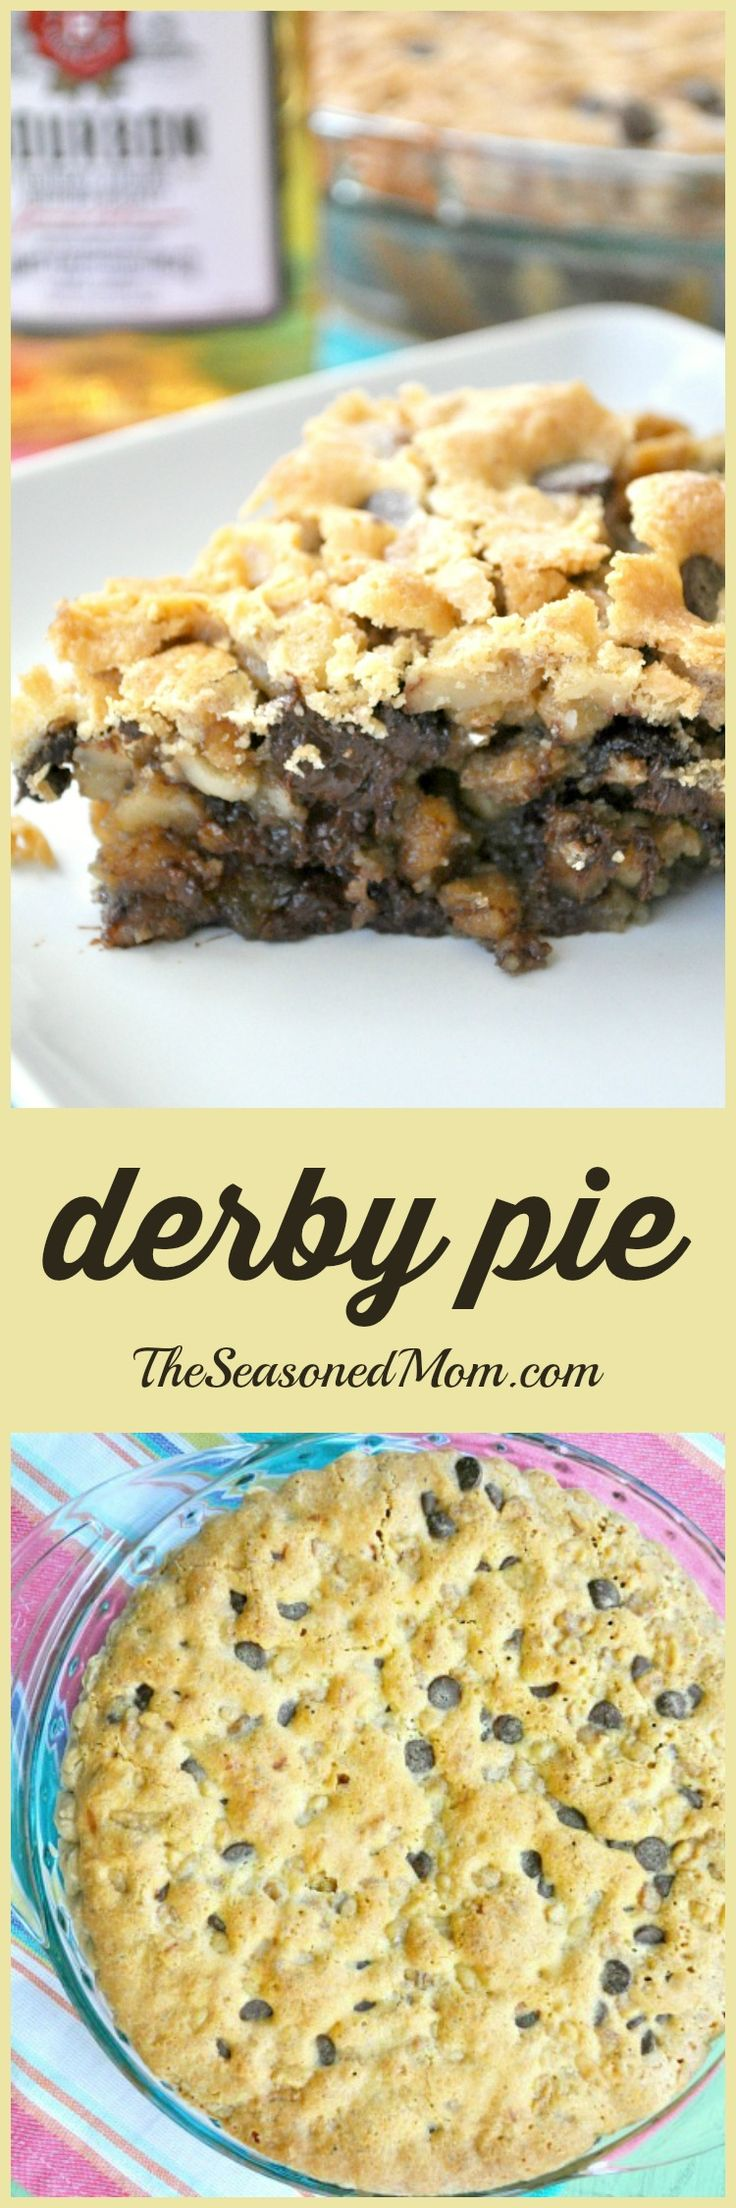 A thick, gooey chocolate chip cookie meets a warm buttery pie that's spiked with just the right amount of bourbon for a heavenly and decadent Southern dessert! Perfect for Derby Day parties!